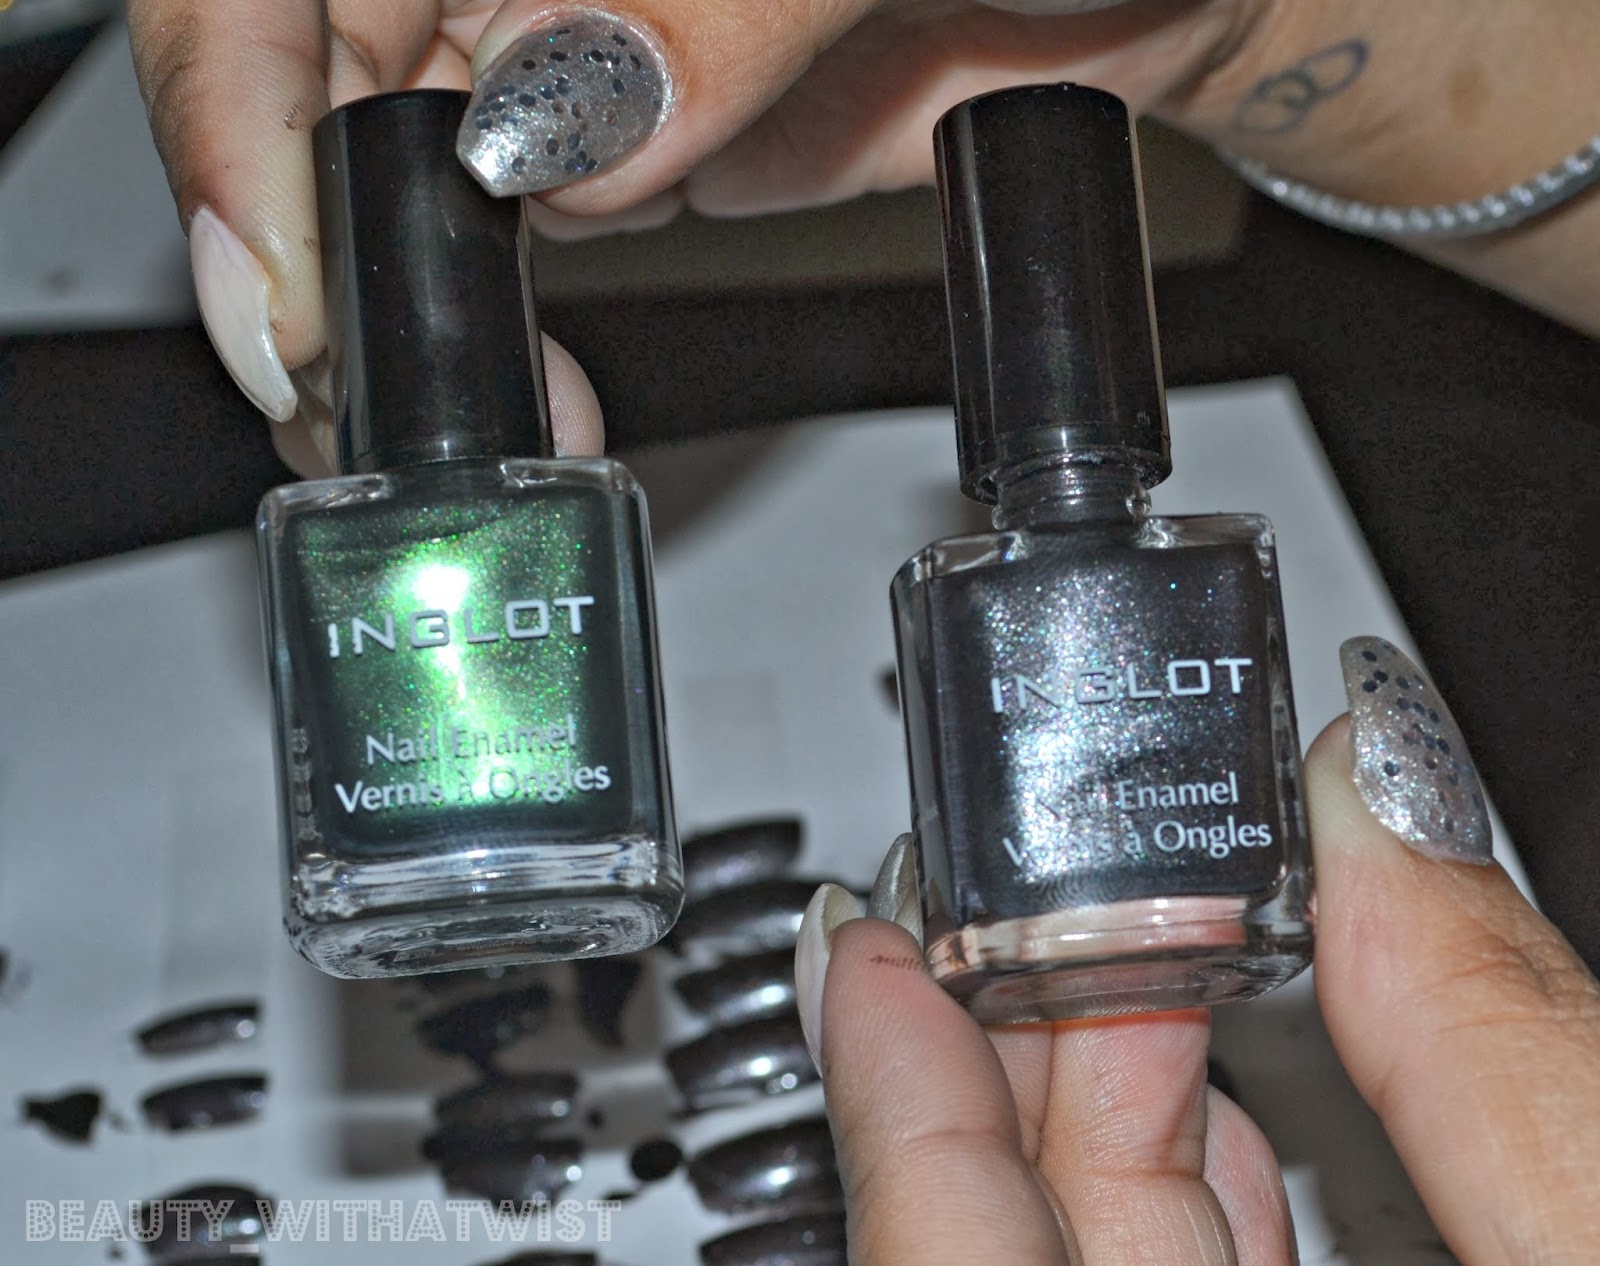 5:31 Jérôme, NYFW, Beauty with a Twist, Inglot, beauty, nails, nail polish